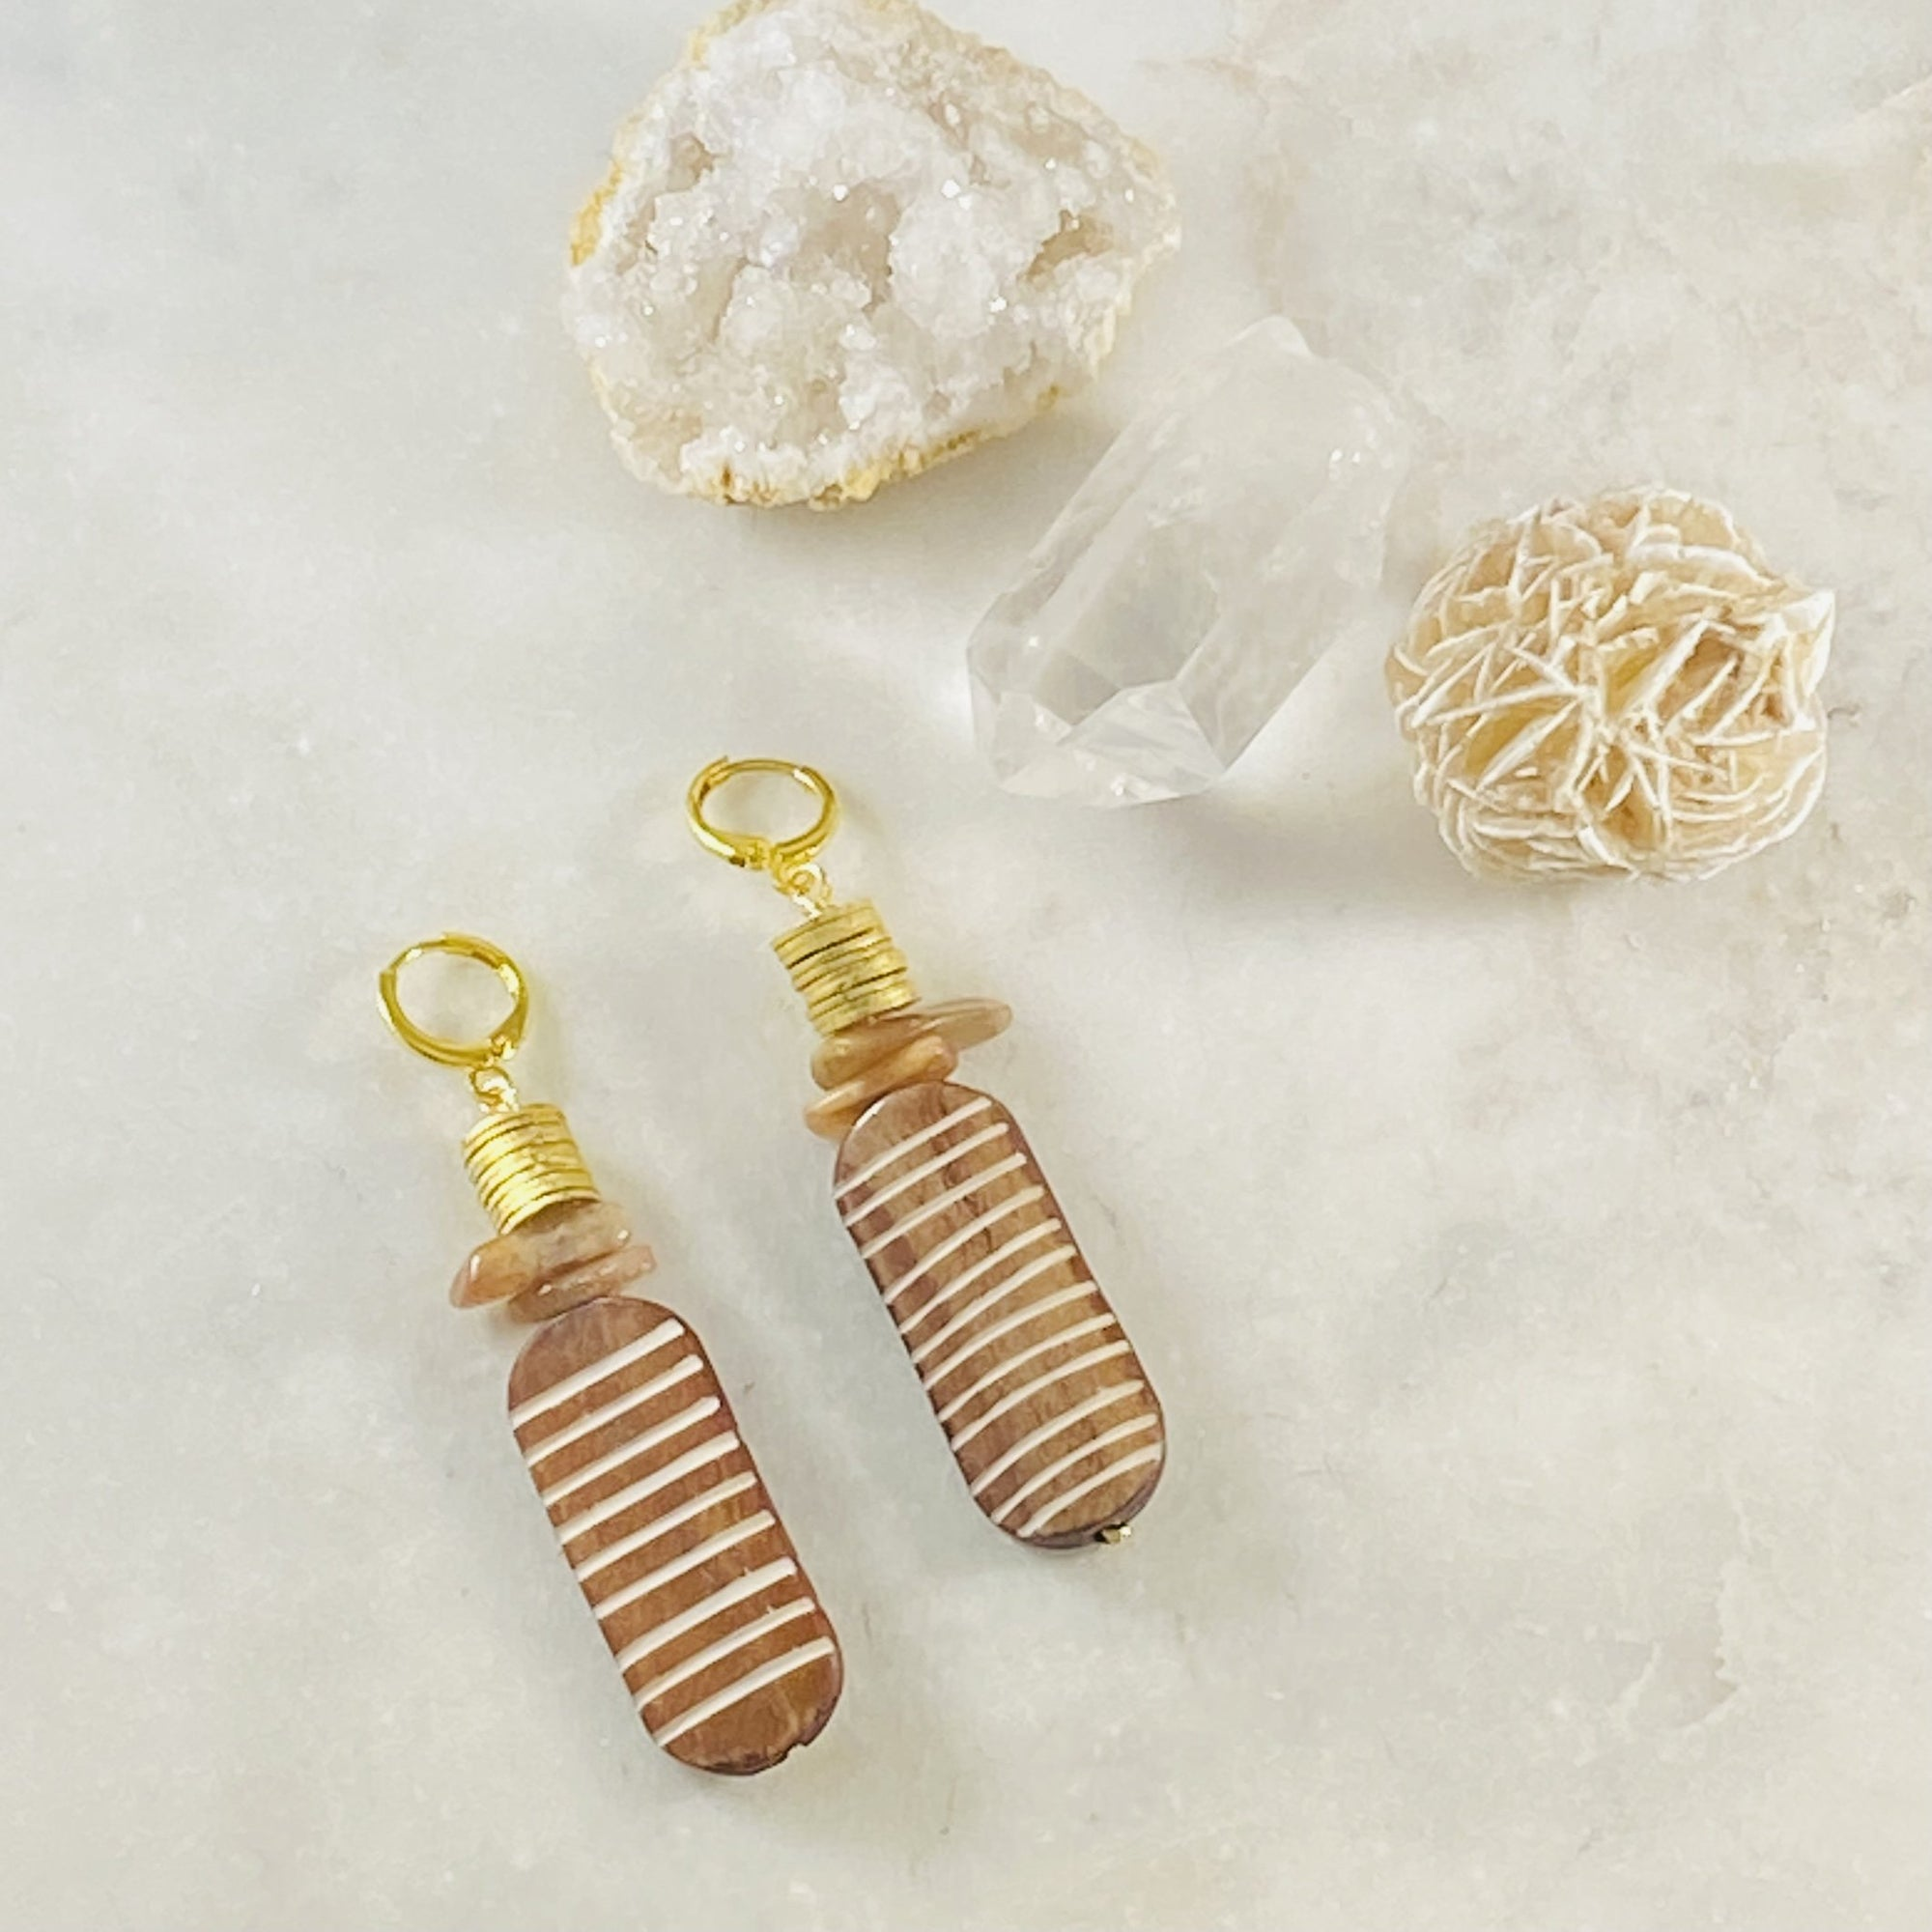 Handmade Aiyana earrings by Sarah Belle with an eclectic vibe